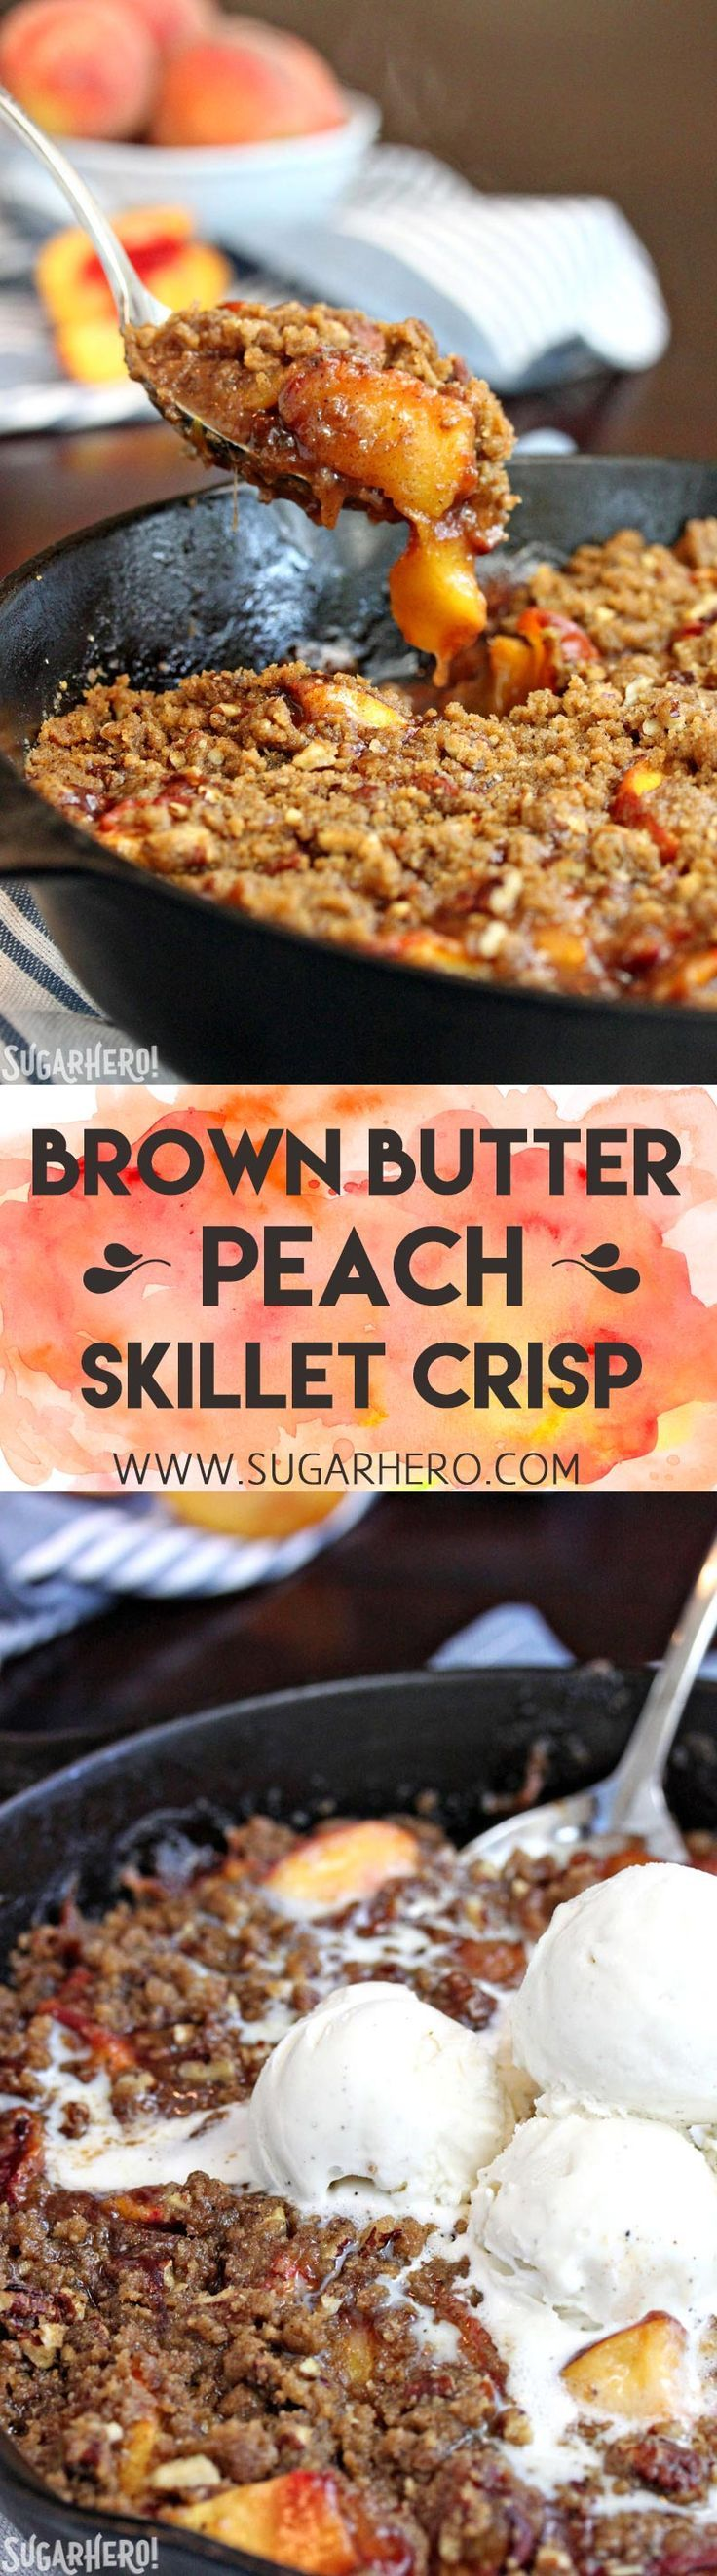 This Brown Butter Skillet Peach Crisp is packed with juicy peaches, and topped with a crunchy brown butter pecan crumble. It's the perfect comfort food! | From SugarHero.com